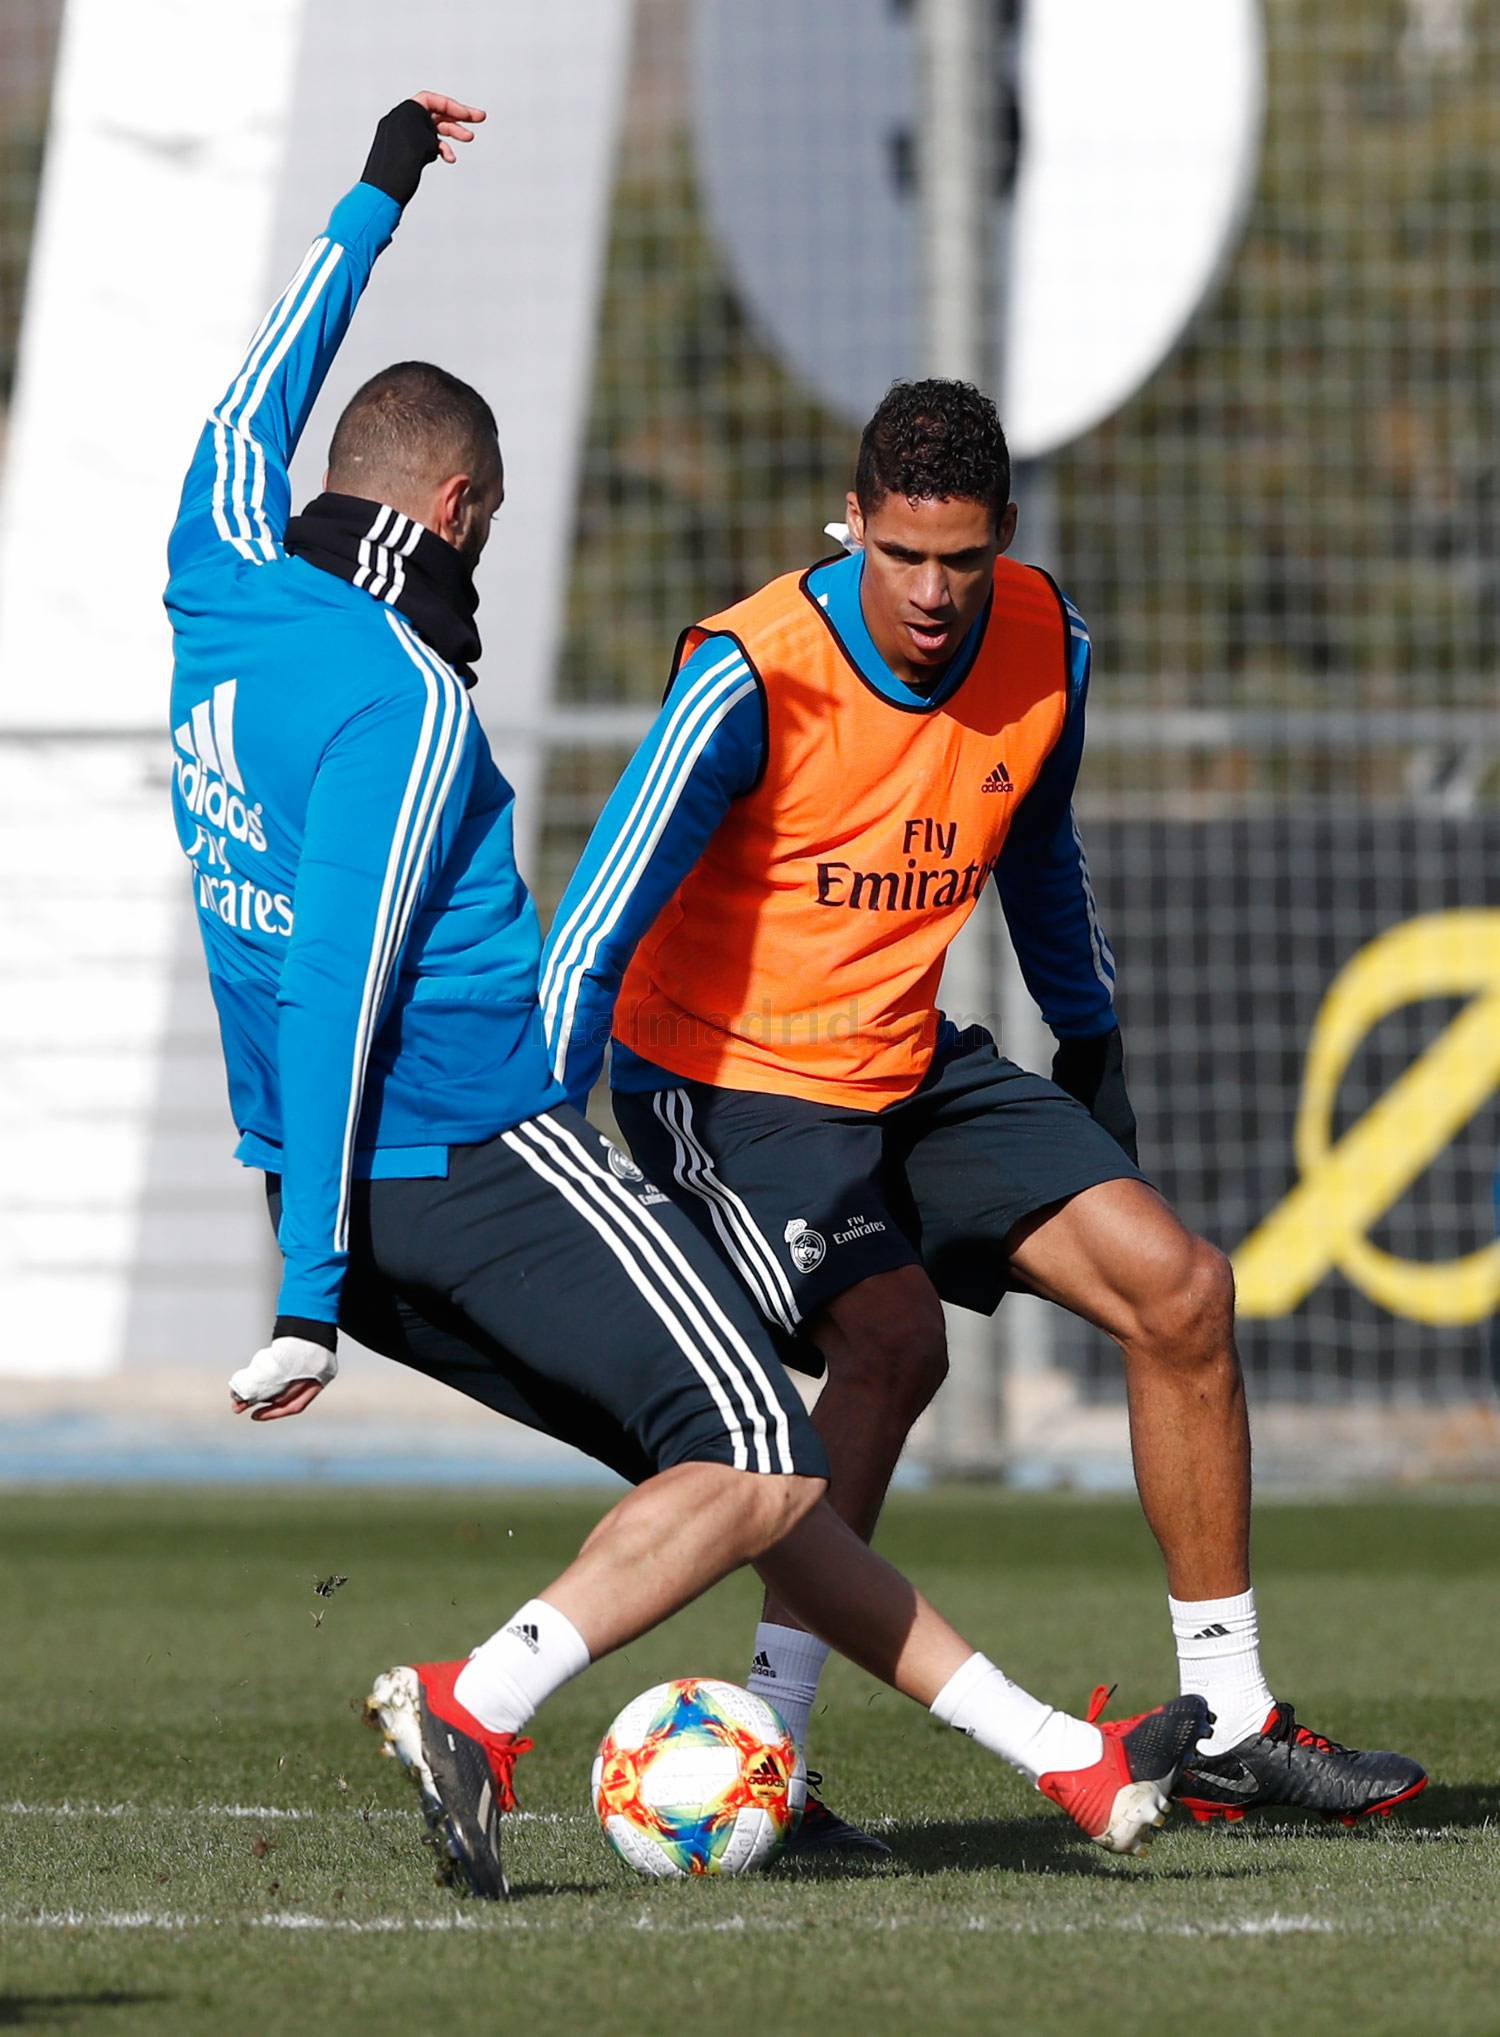 Real Madrid - Entrenamiento del Real Madrid - 23-01-2019